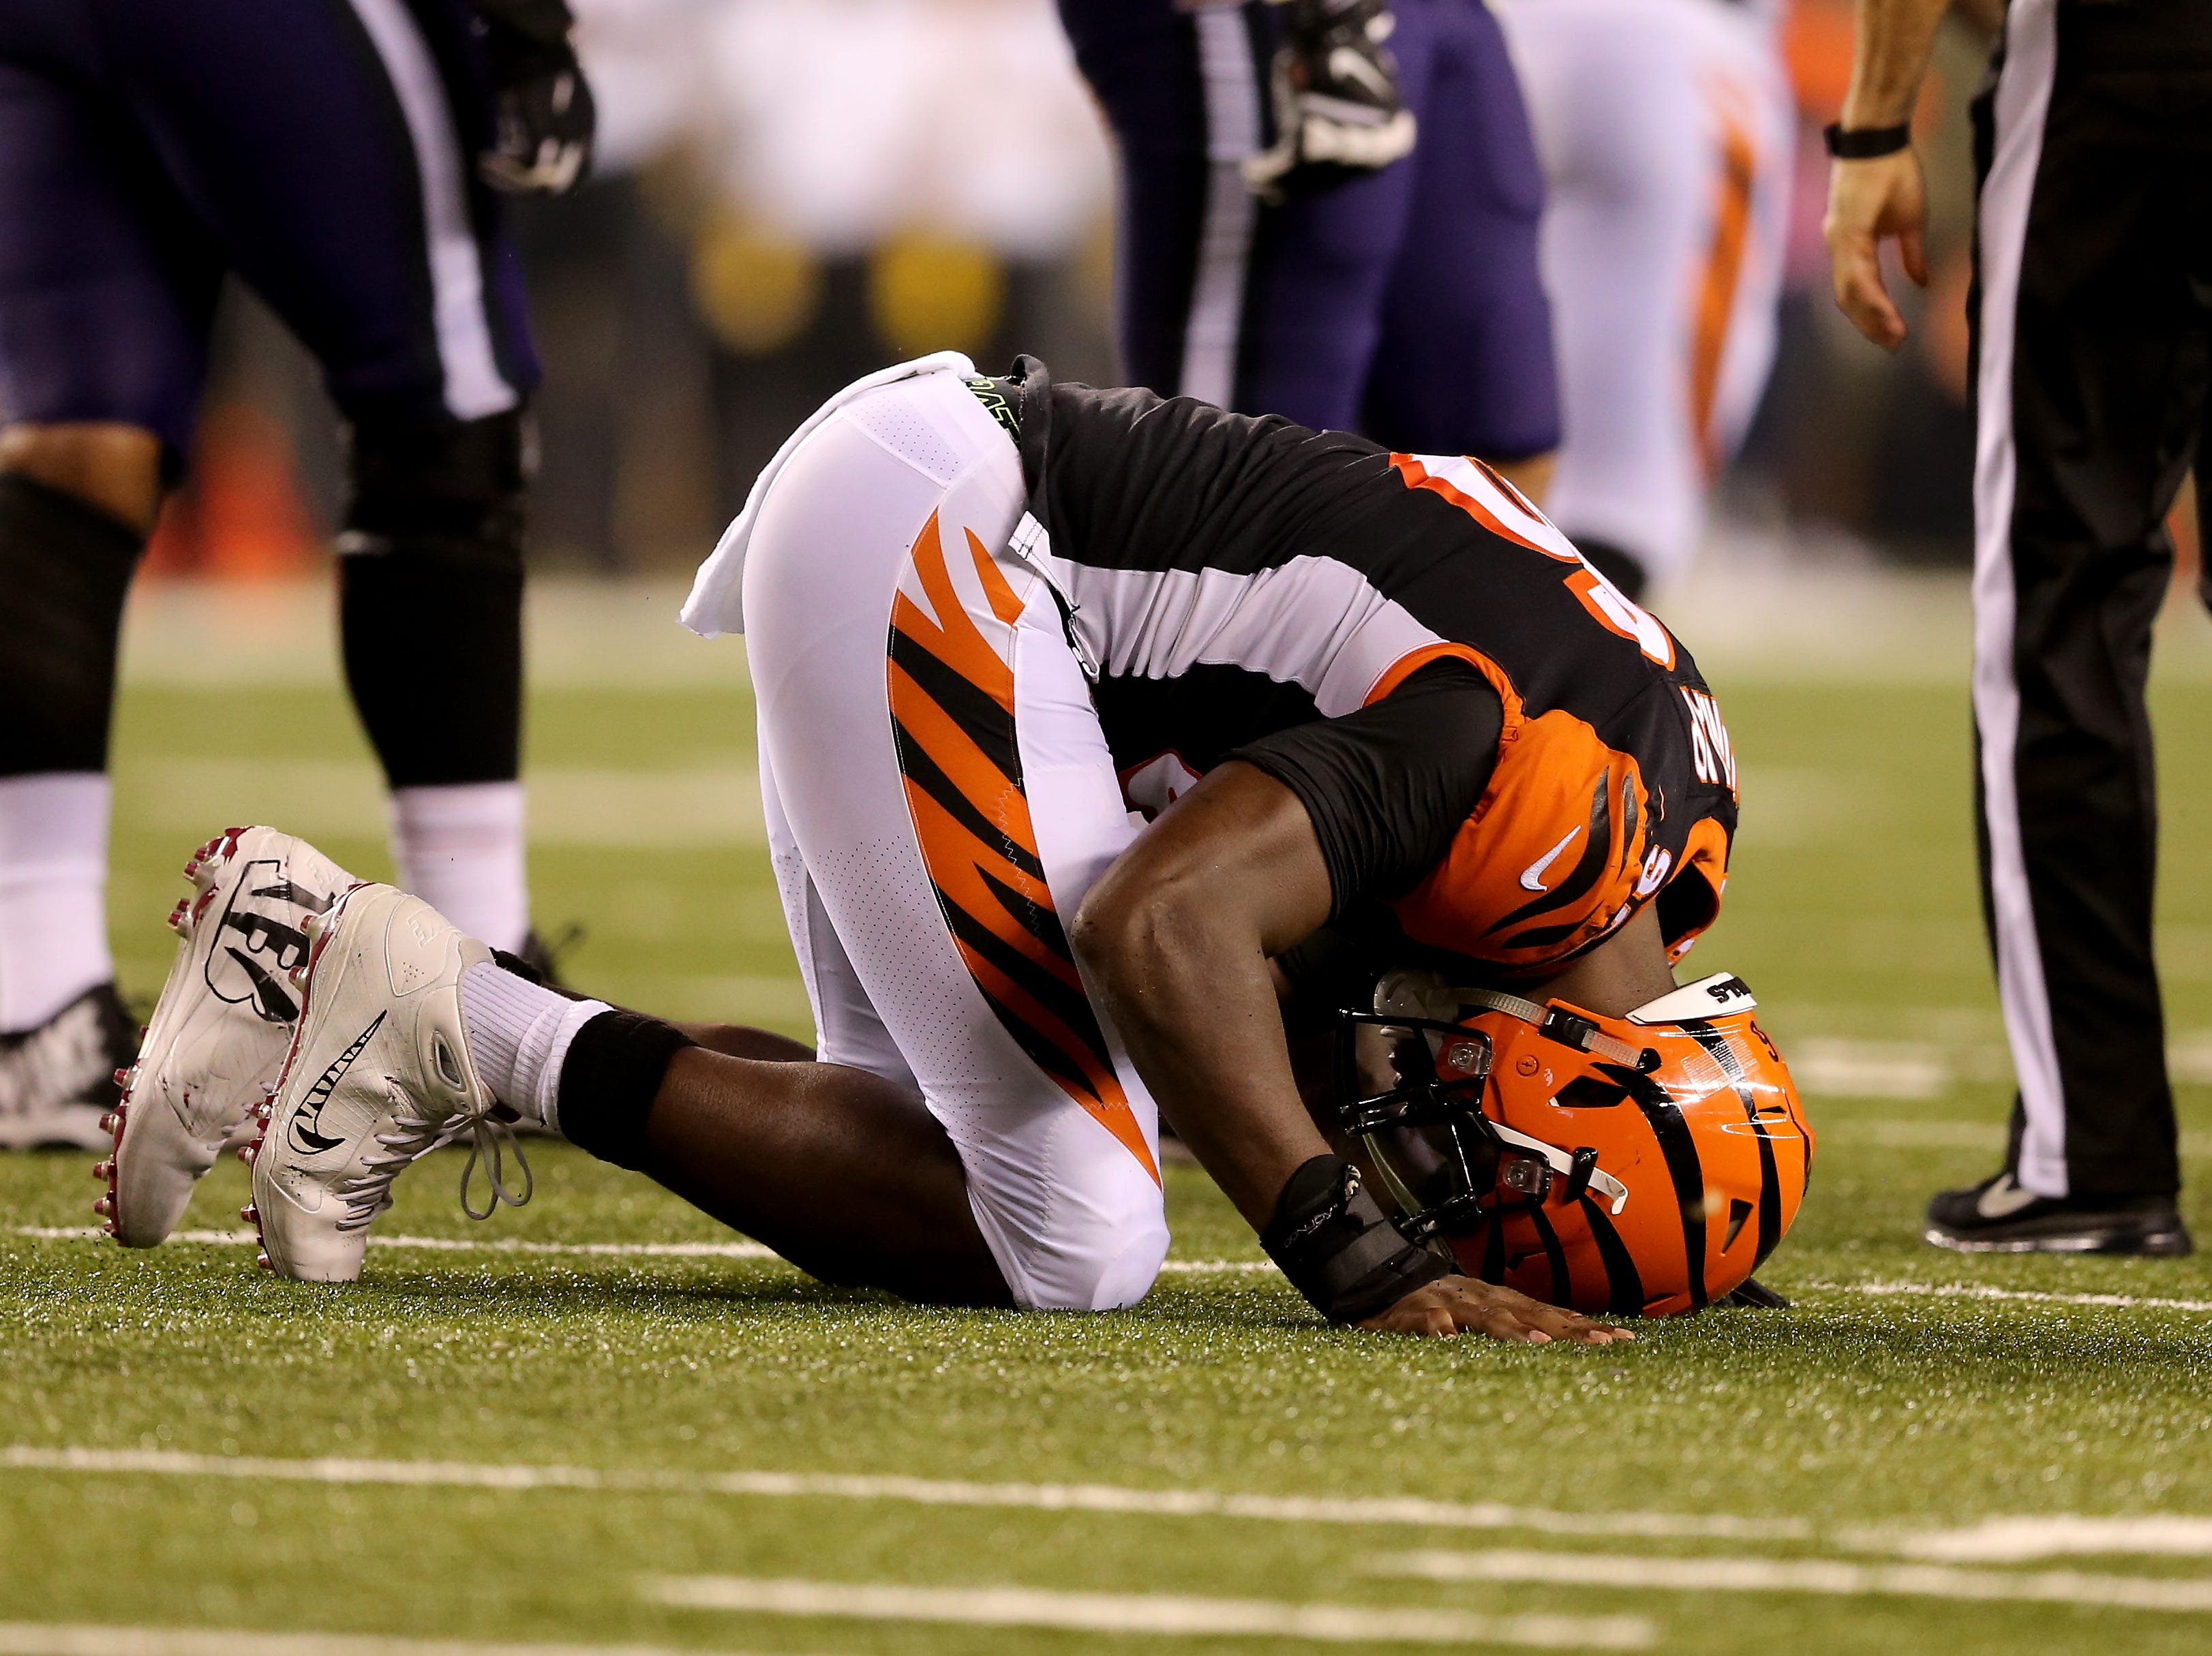 Cincinnati Bengals defensive end Carlos Dunlap (96) bends over in frustration after being penalized for roughing the passer in the fourth quarter during the Week 2 NFL football game between the Baltimore Ravens and the Cincinnati Bengals, Friday, Sept. 14, 2018, Paul Brown Stadium in Cincinnati. Cincinnati won 34-23.